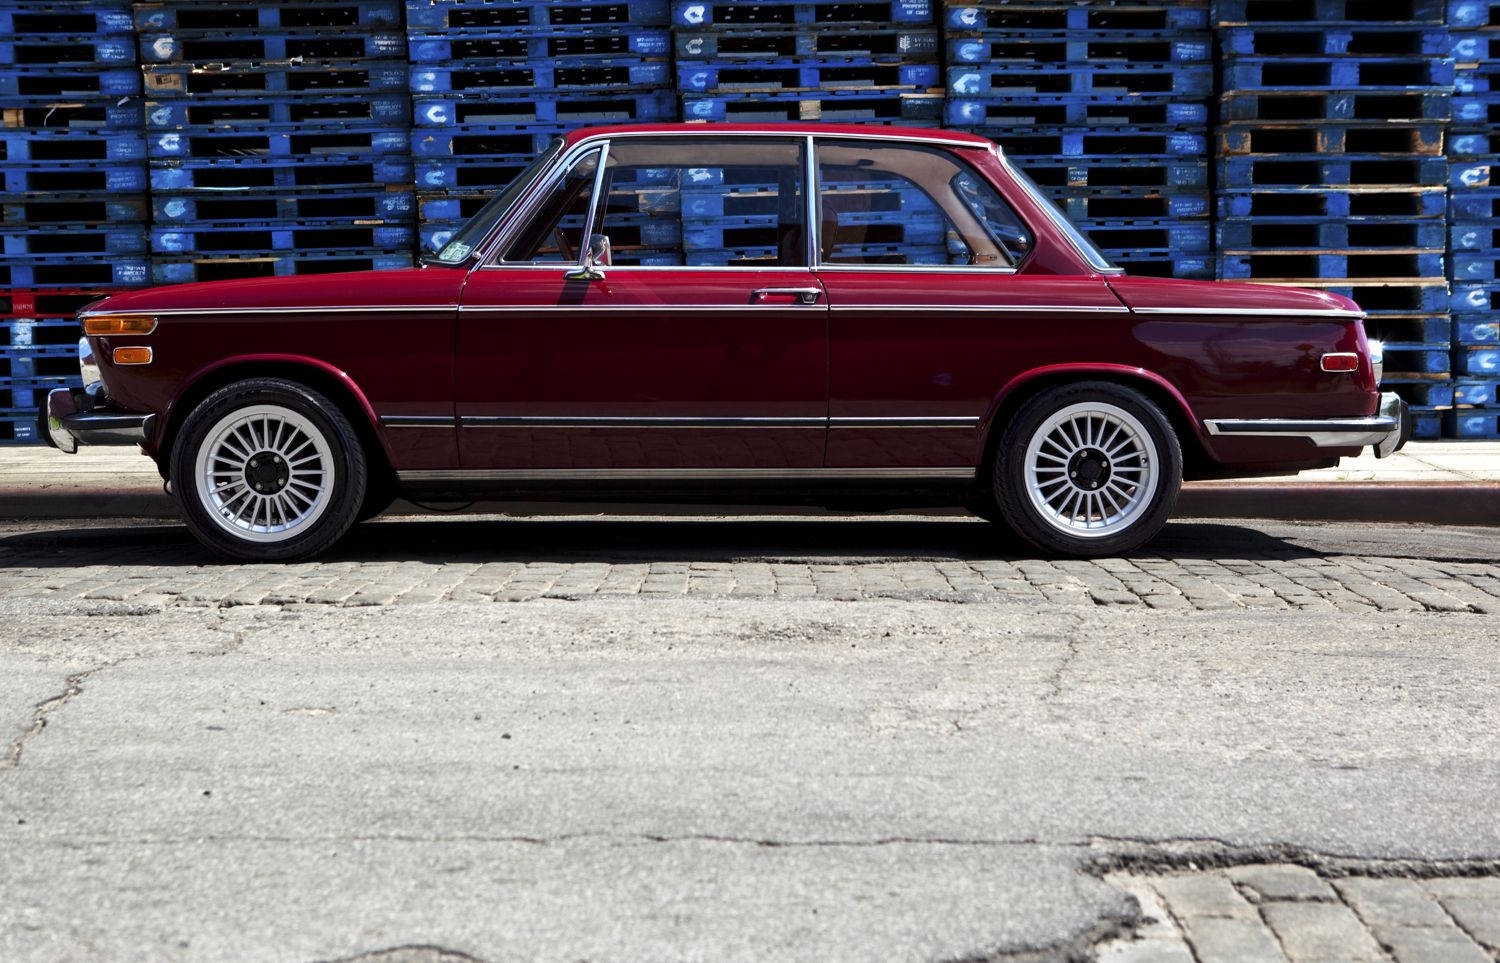 Duarte almada these 1000 pictures inspire me surf pinterest bmw bmw 2002 and surf